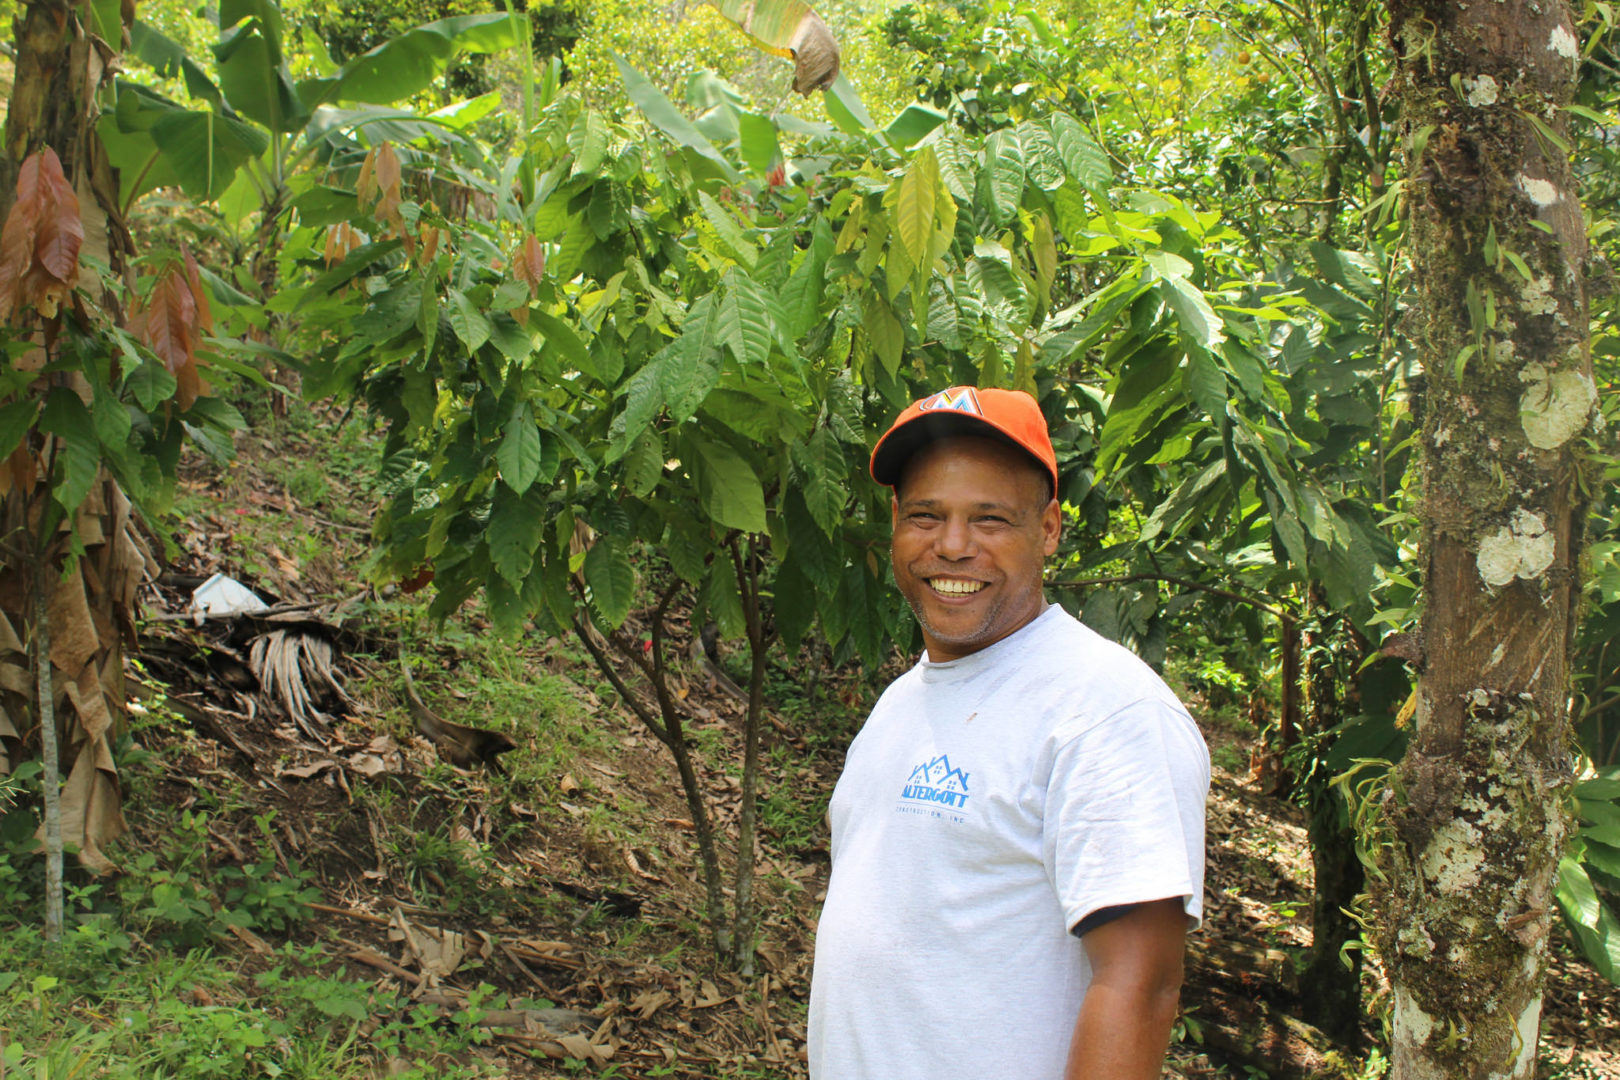 Crop diversification was key to helping Andres' grow a more sustainable farm.